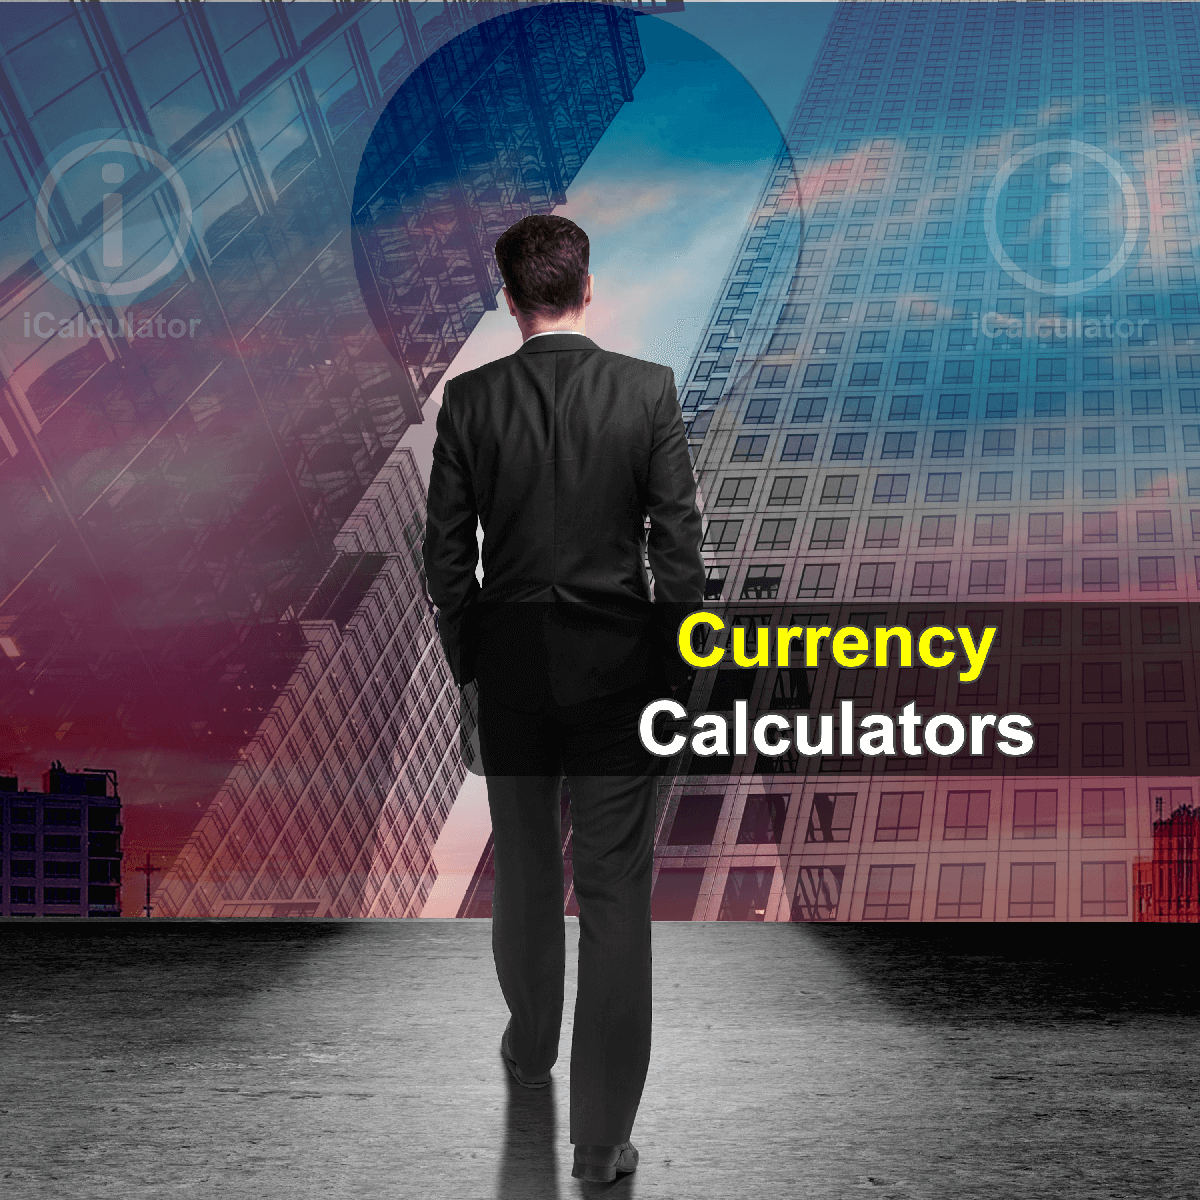 Currency Calculators. This image shows a trader considering the merits of currency trading and the expected margin of return, supporting his decision making by using the currency calculators provided by iCalculator.